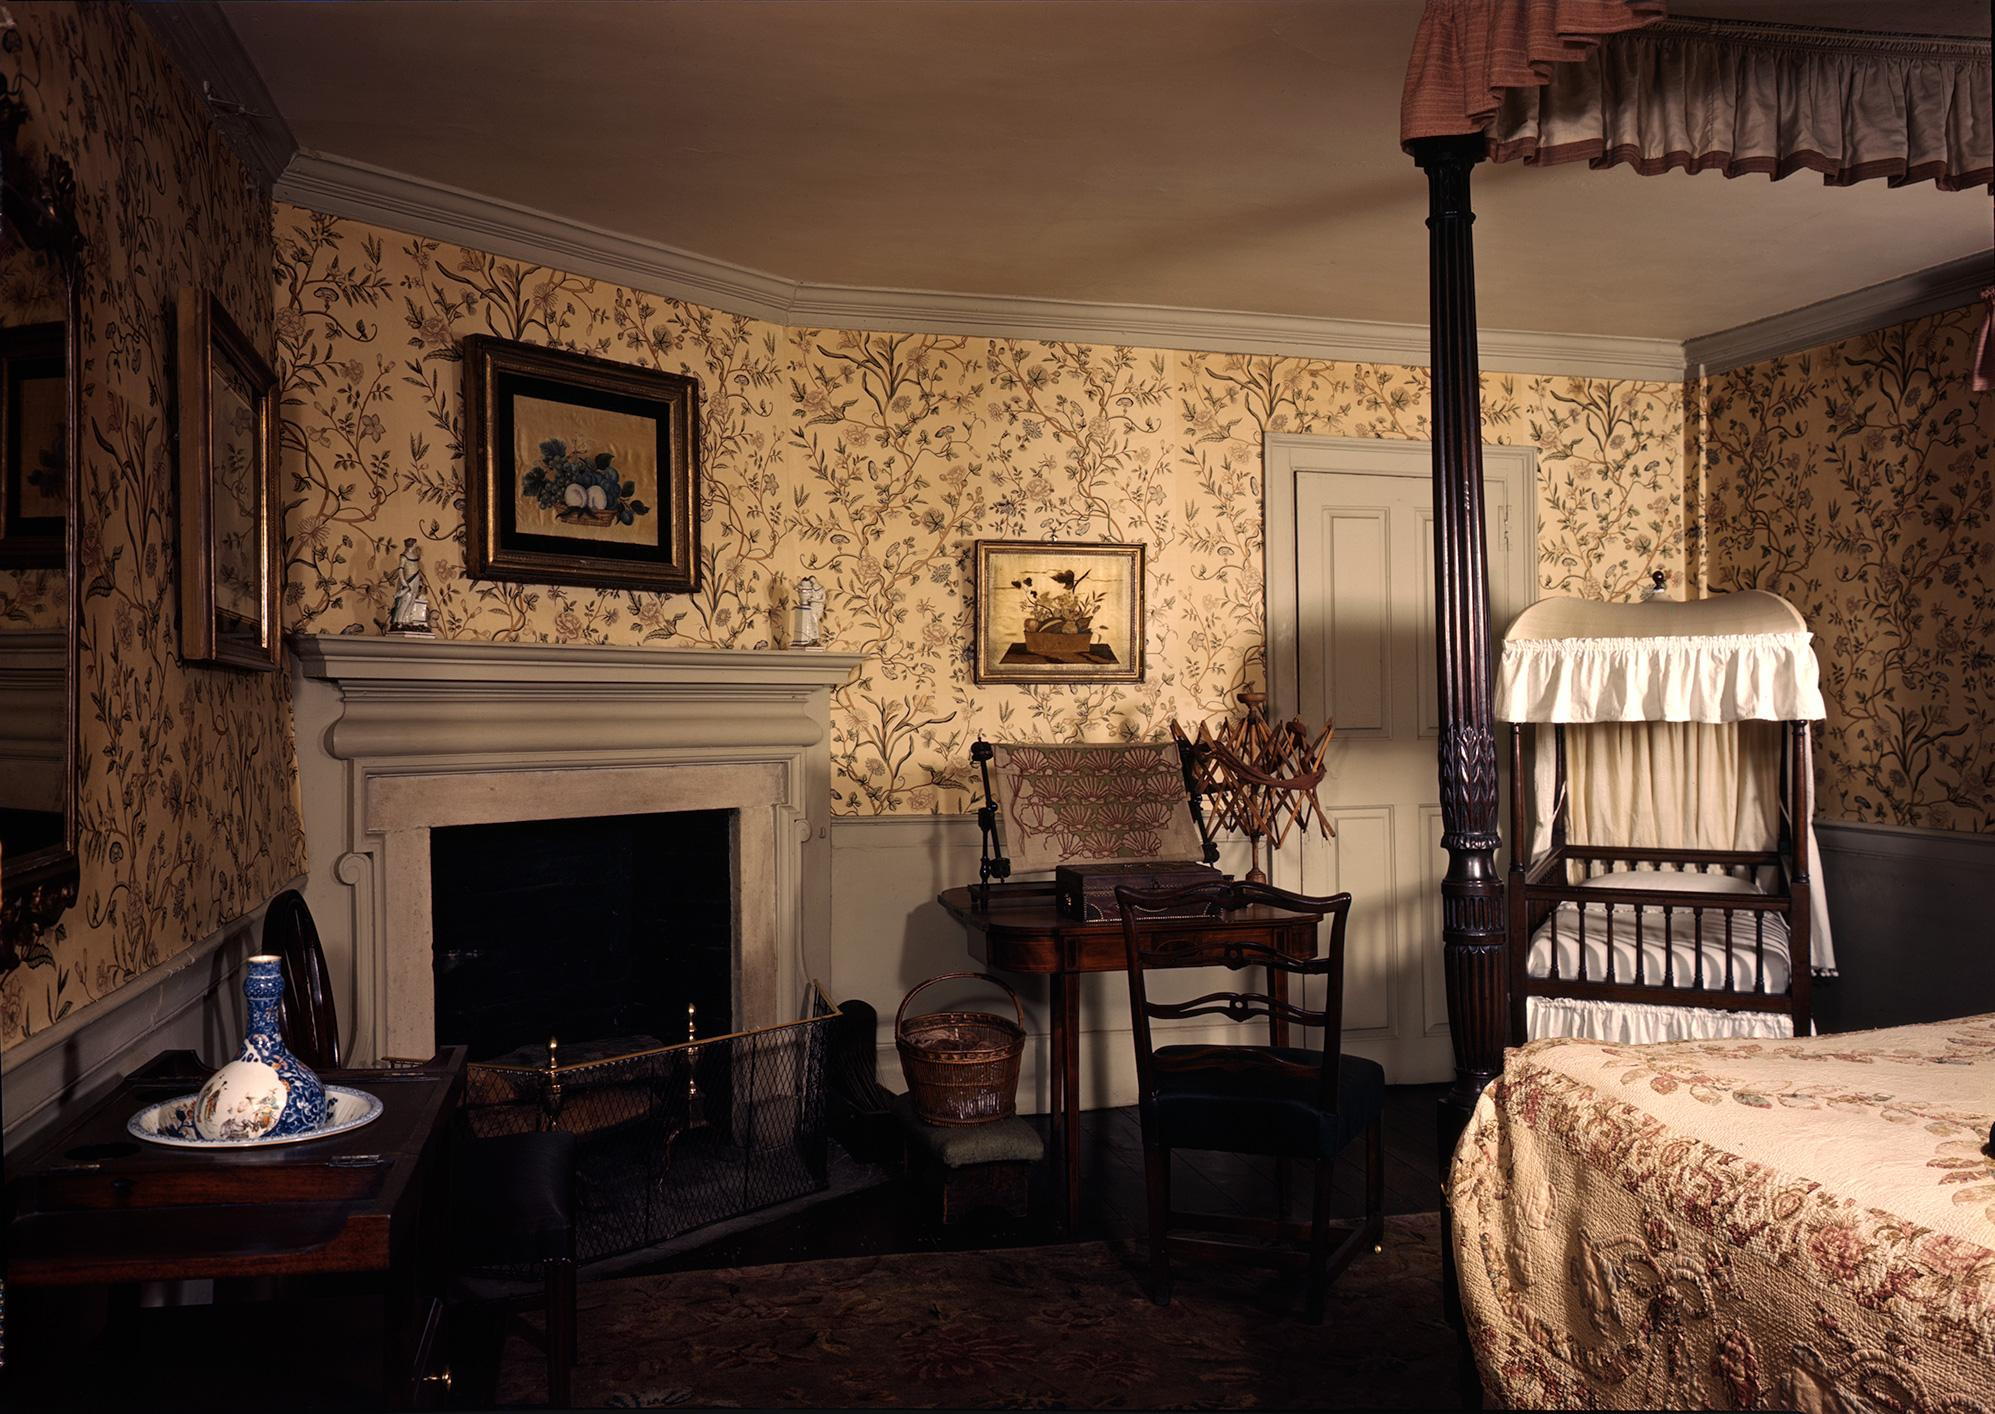 The Nelly Custis Room, aka the Chintz Room, with reproduction chintz pattern wallpaper, 1959. Photograph by Samuel Chamberlain